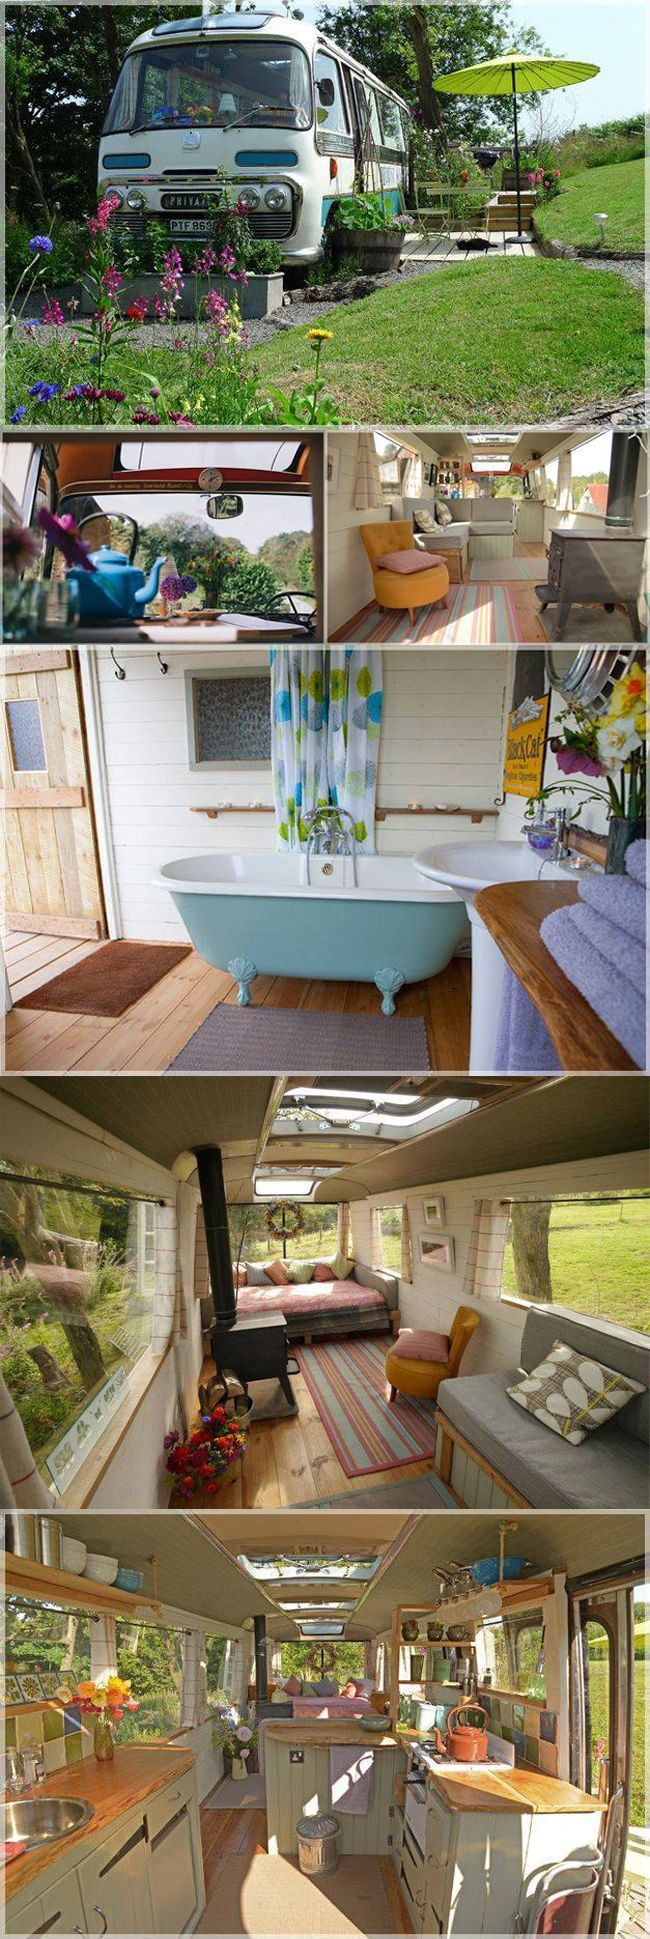 Located on the edge of the Radnorshire Hills 5.5 miles away from the famous book town of Hay-on-Wye in Wales.